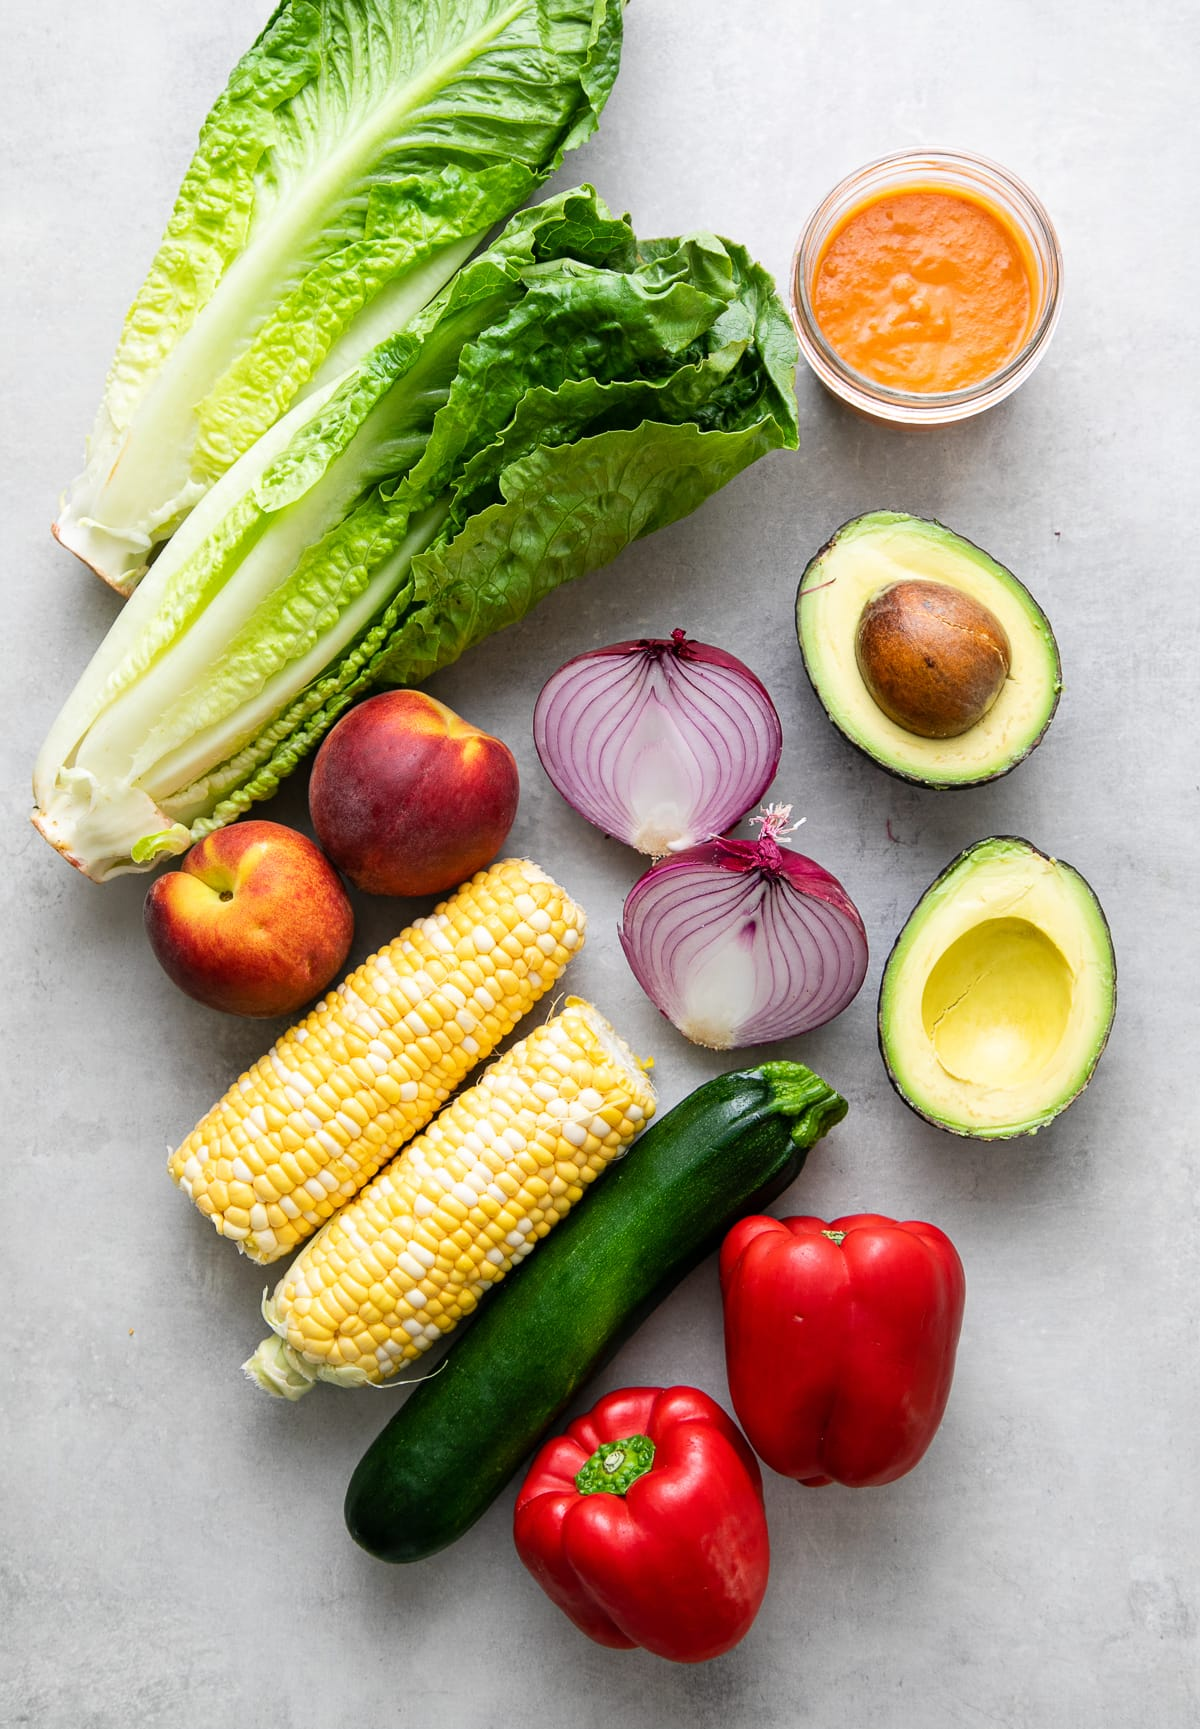 top down view of ingredients used to make farmer's market salad.